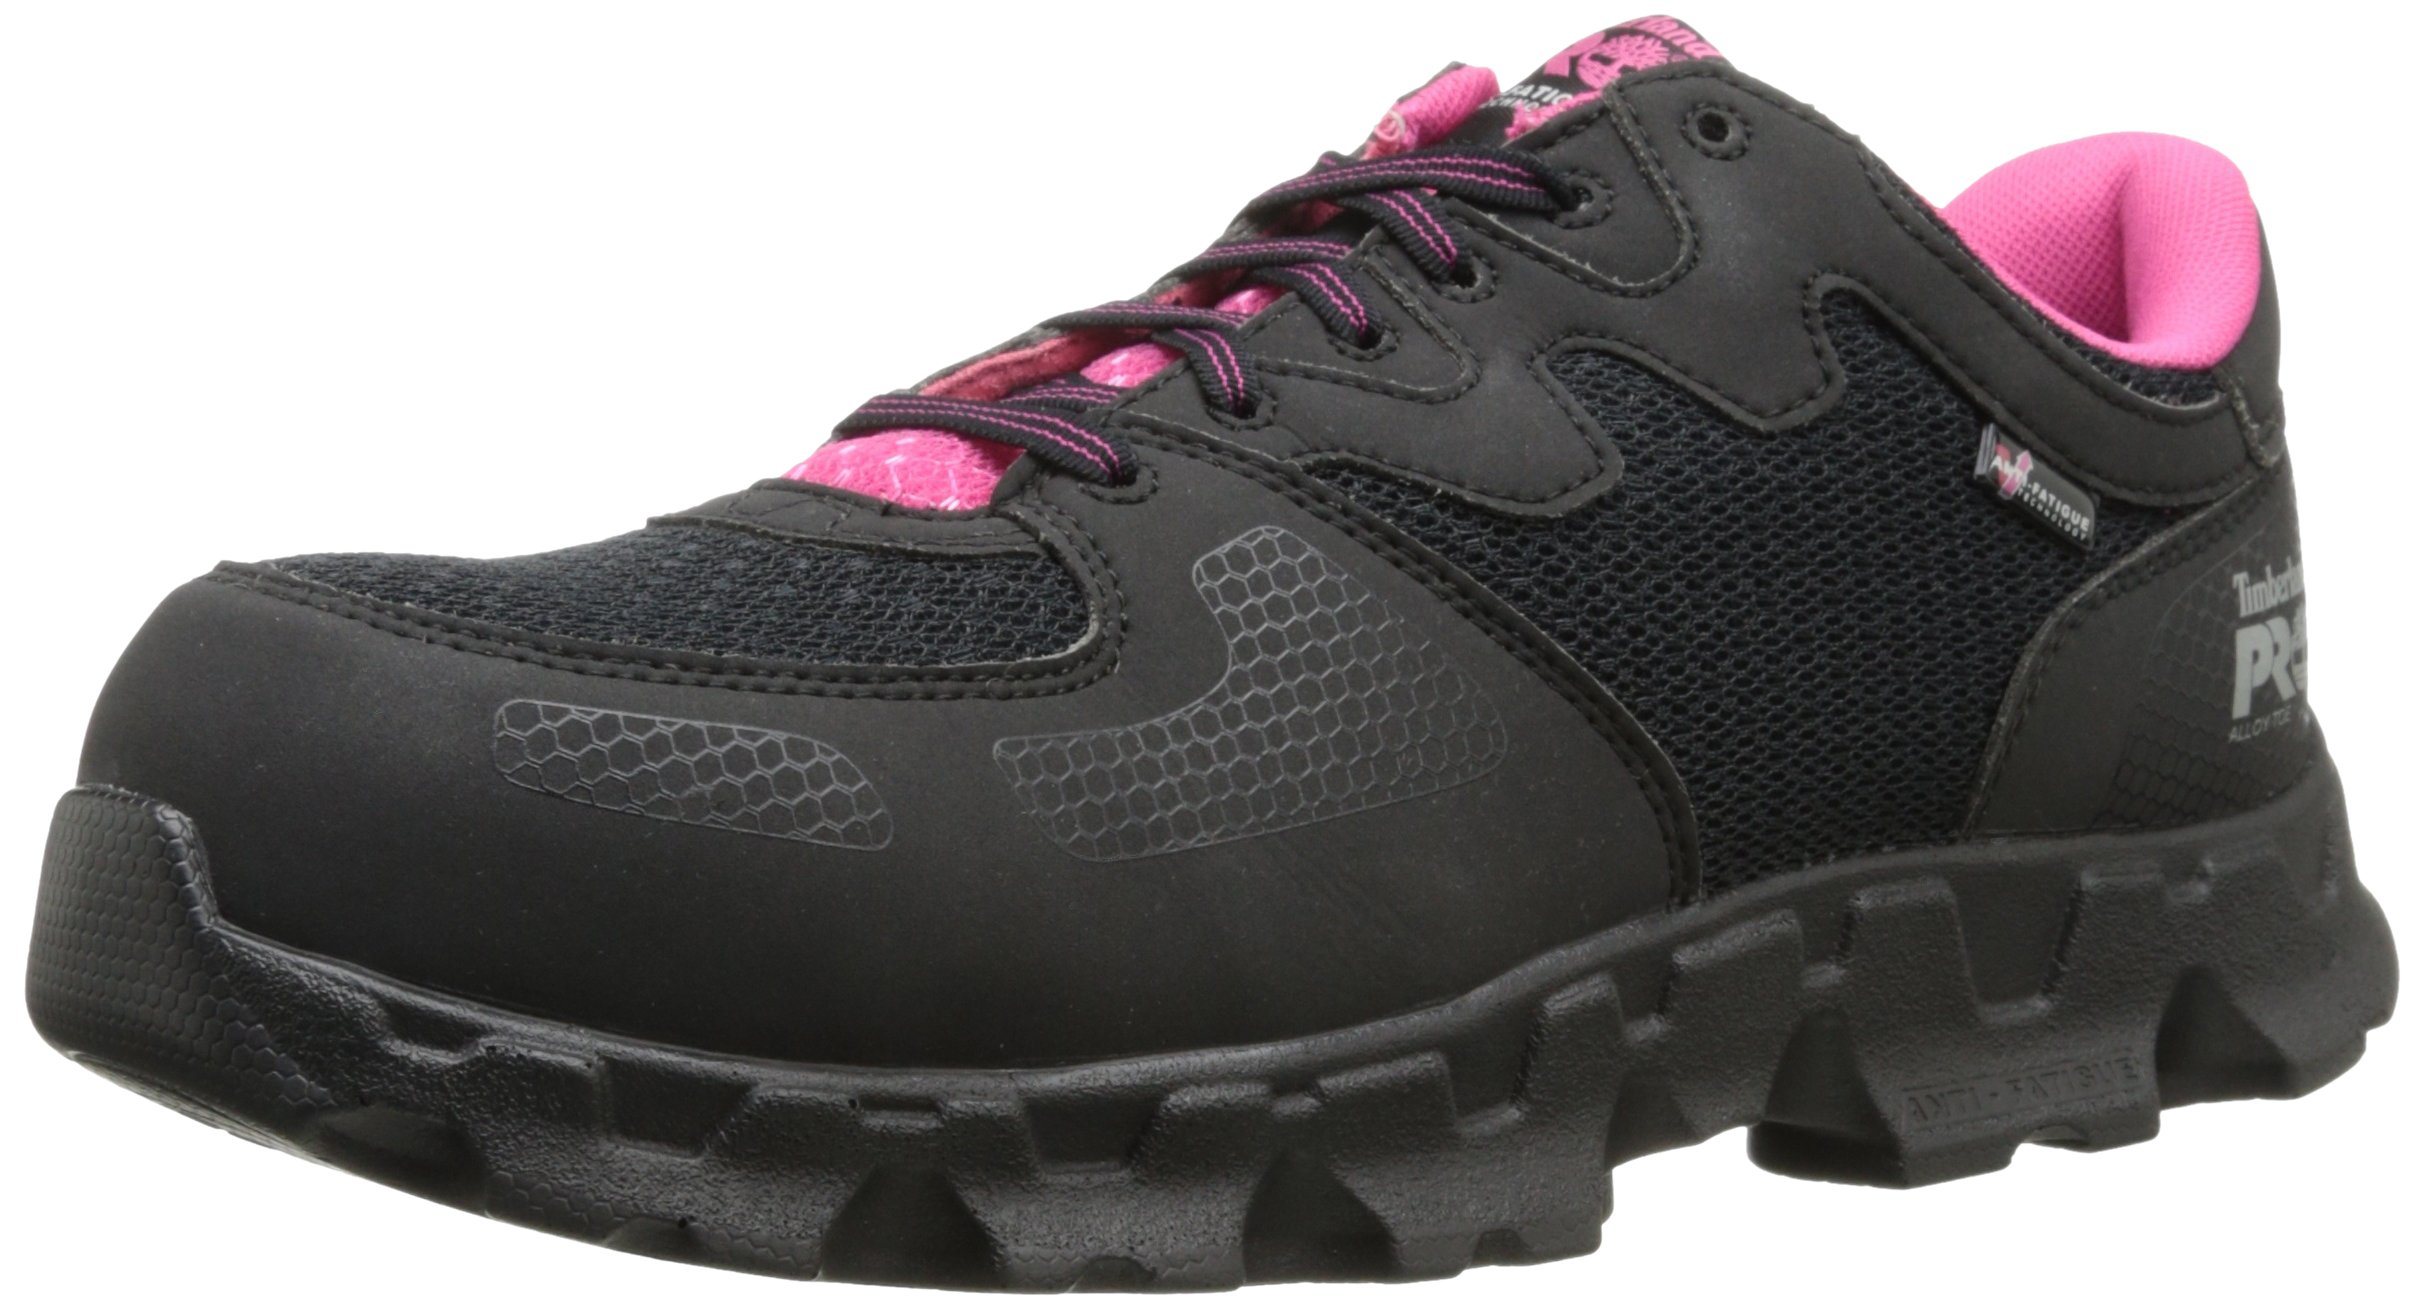 Timberland PRO Women's Powertrain Alloy Toe ESD W Industrial Shoe,Black/Pink Microfiber And Textile,7.5 M US